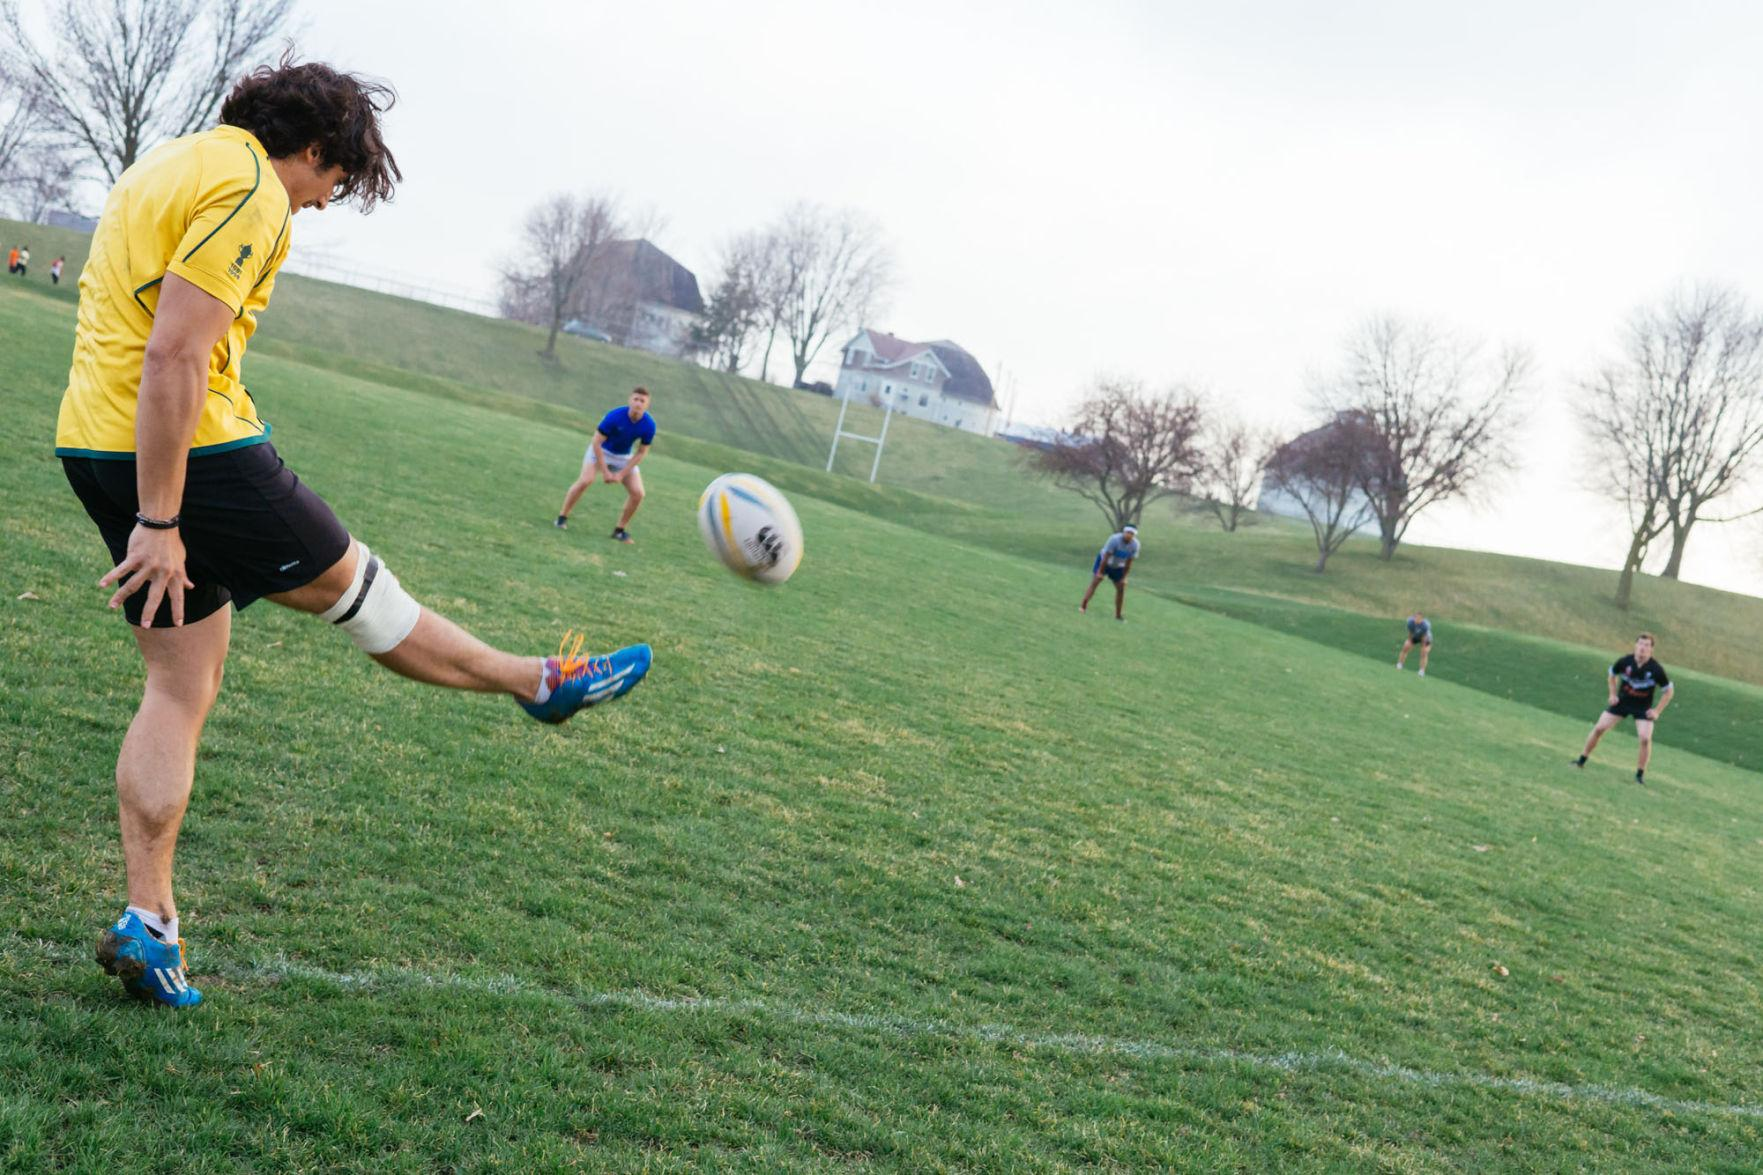 Illini+rugby+prepares+for+final+sevens+tournament+in+Iowa.